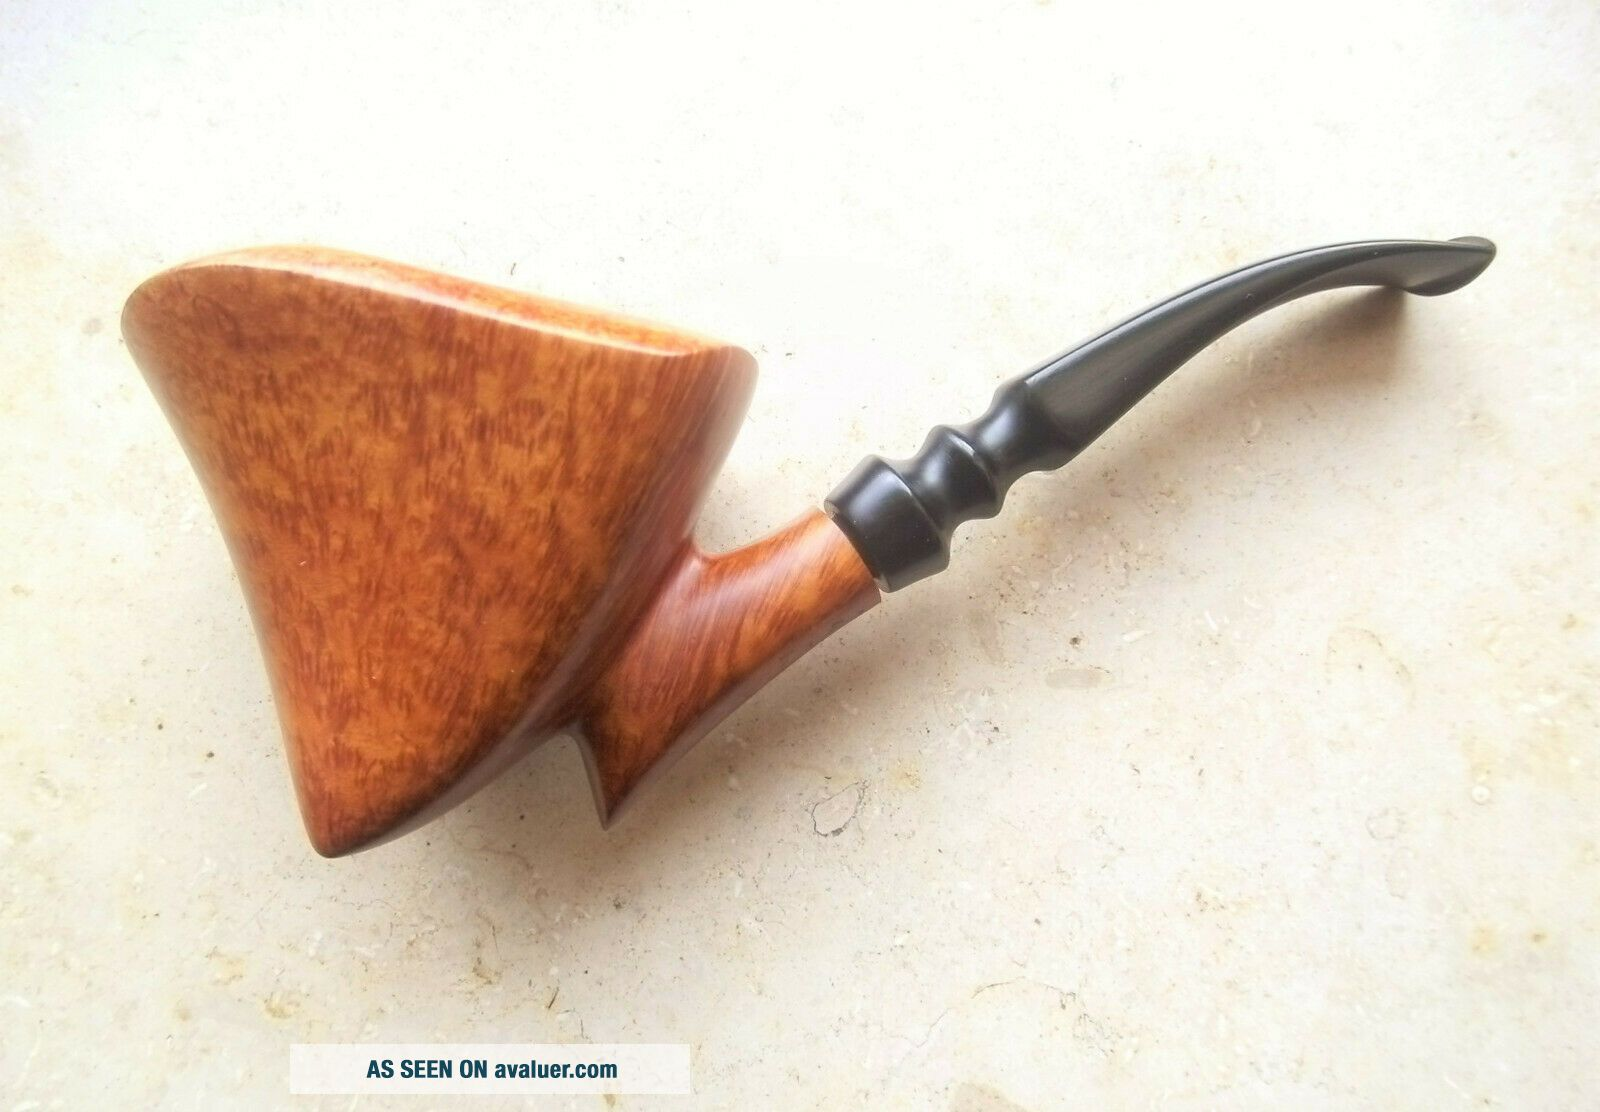 S BANG Copenhagen pipe Handmade in Denmark,  no filter